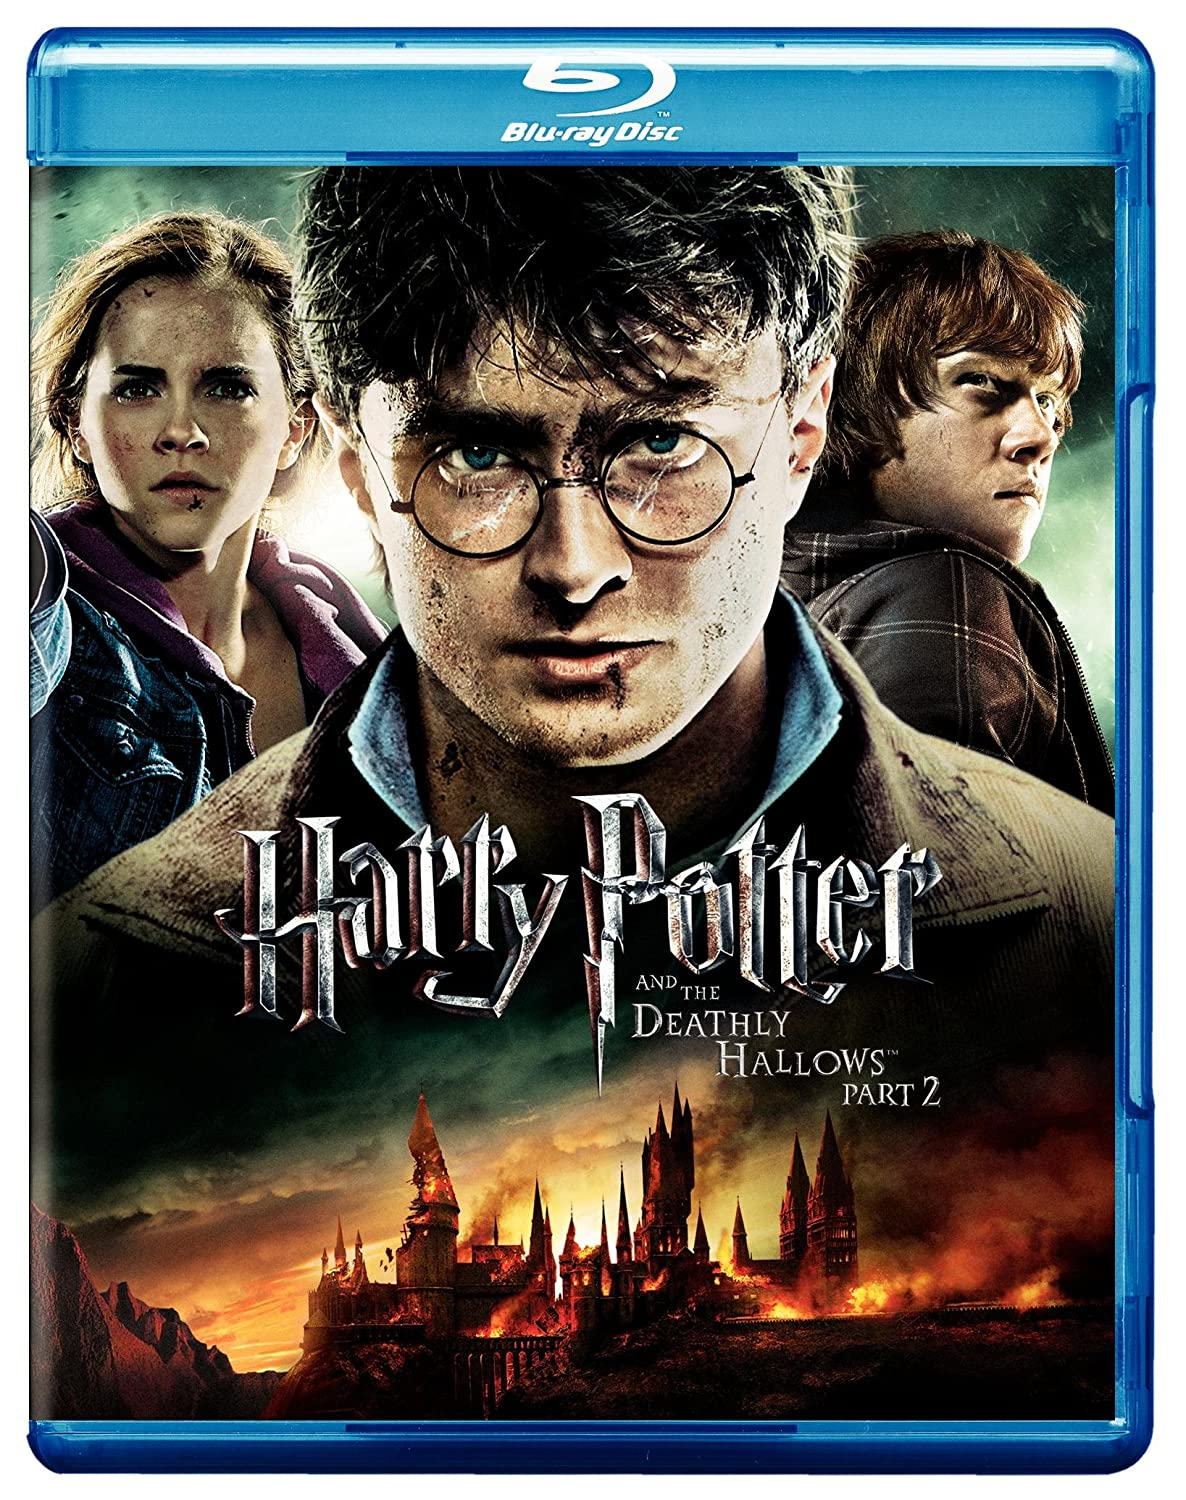 Amazon Com Harry Potter And The Deathly Hallows Part 2 Movie Only Edition Ultraviolet Digital Copy Blu Ray Daniel Radcliffe Rupert Grint Emma Watson David Yates Movies Tv